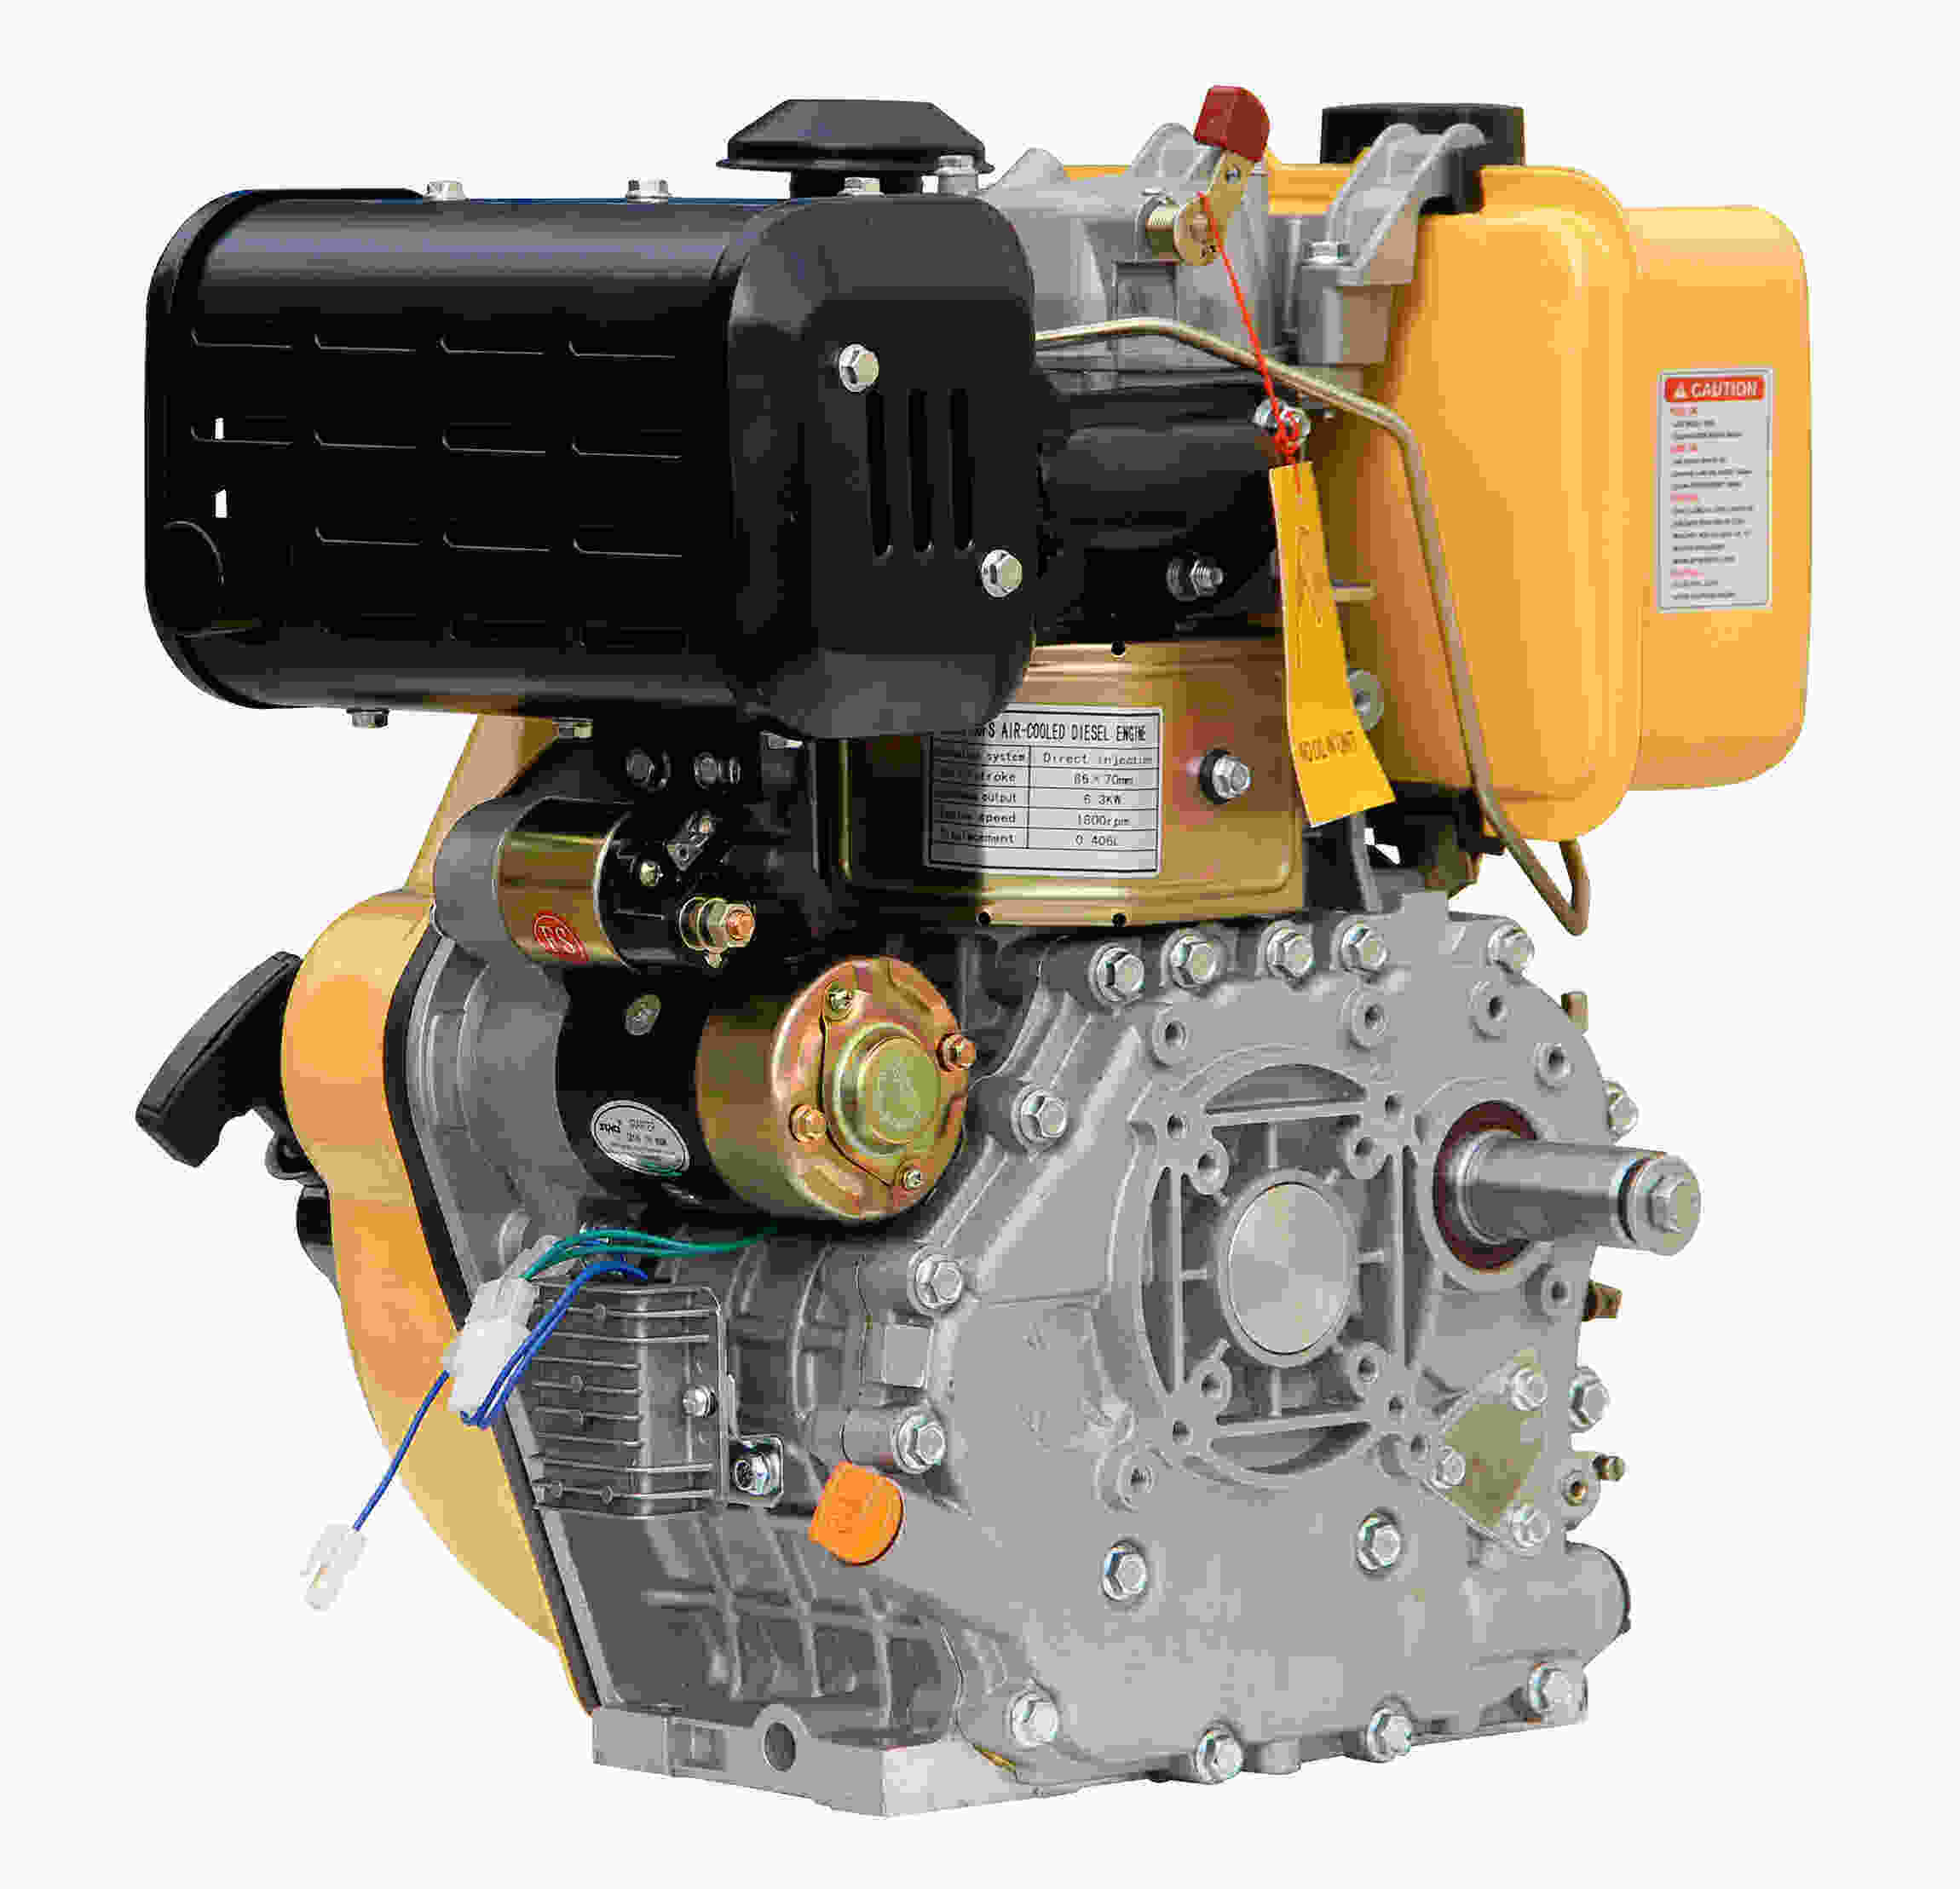 China Power Value Diesel Engine for Sale in Dubai s